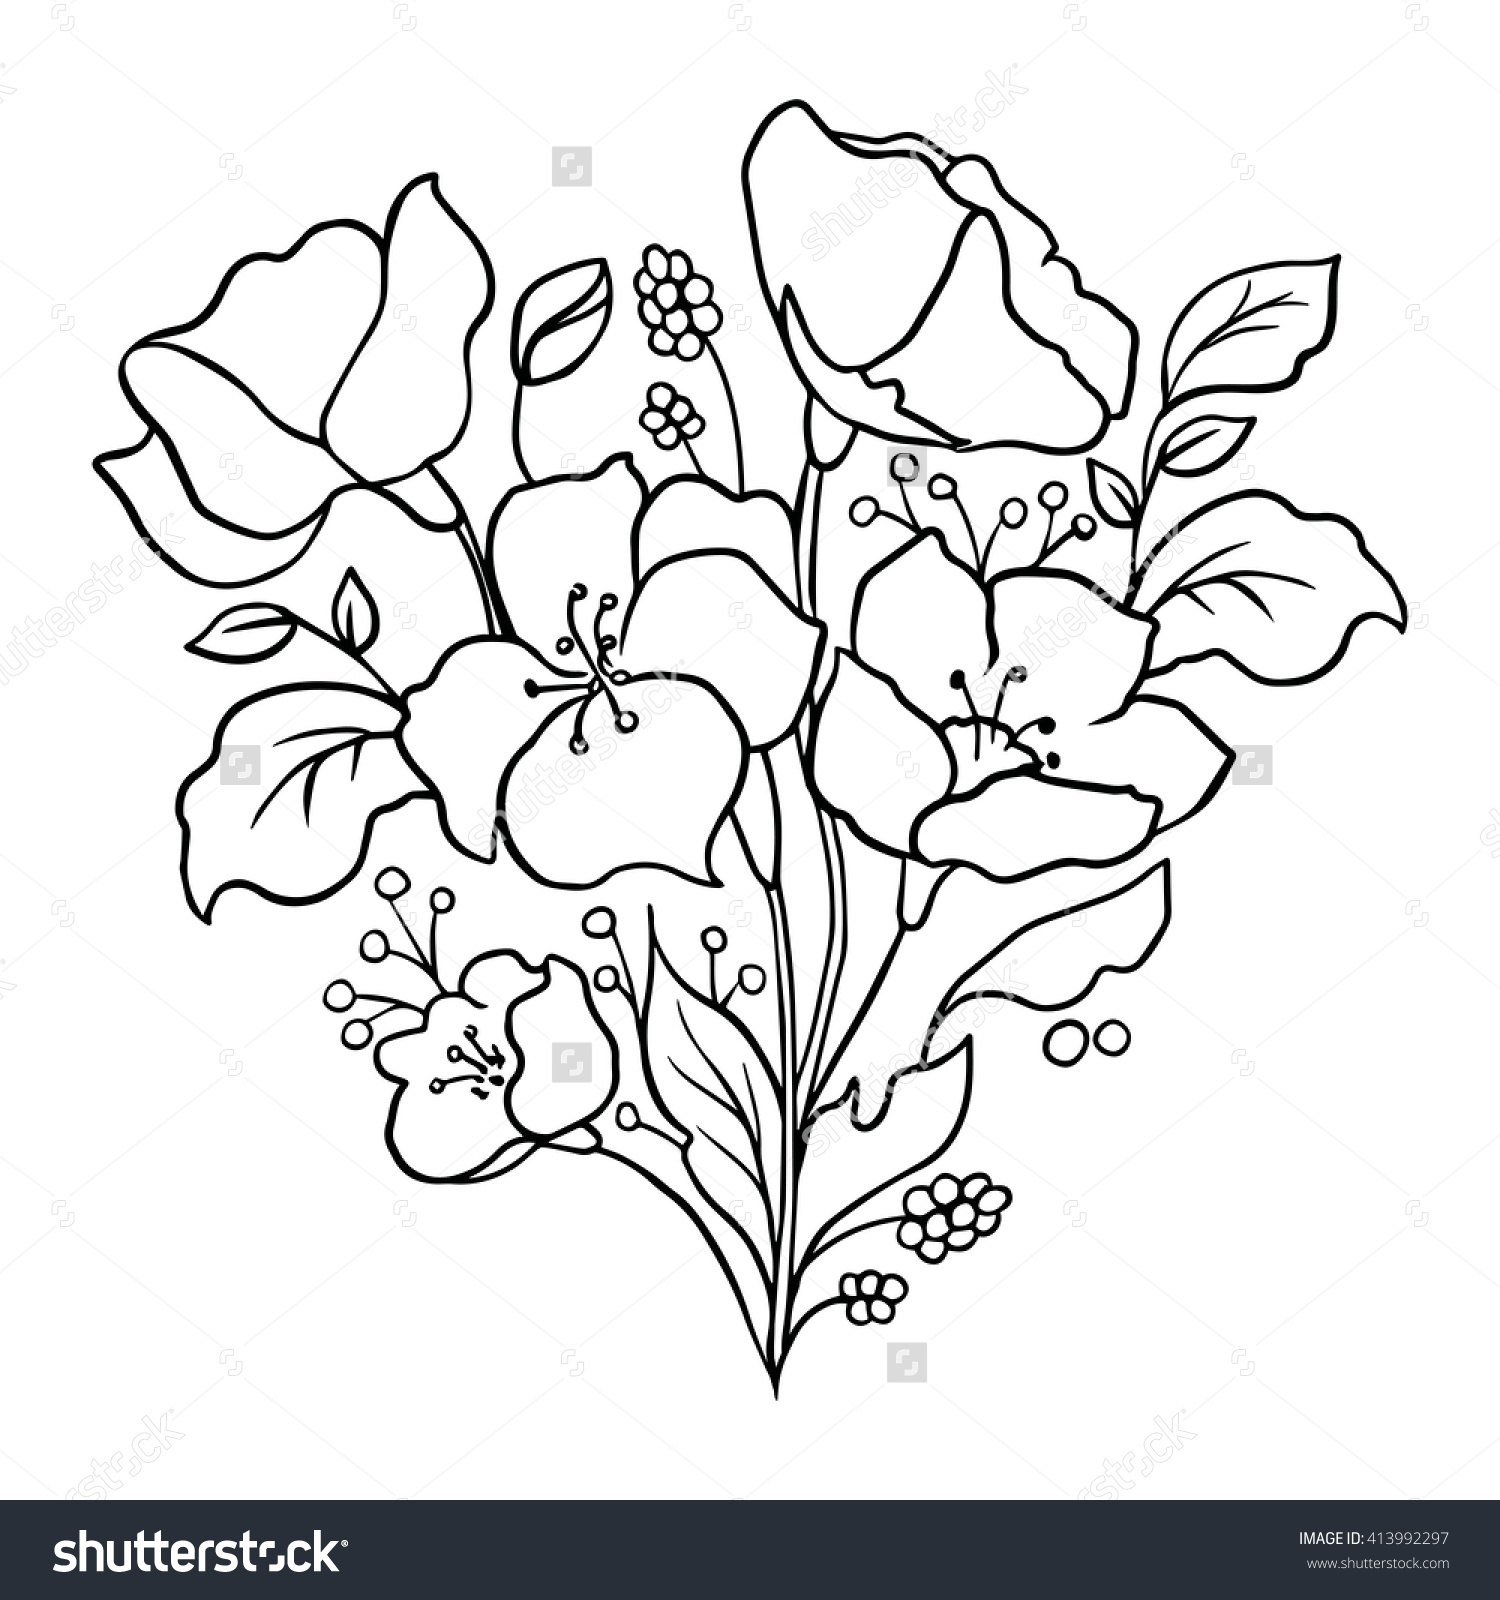 1500x1600 Outline Drawing Of Flowers Floral Outline Silhouette Flowers